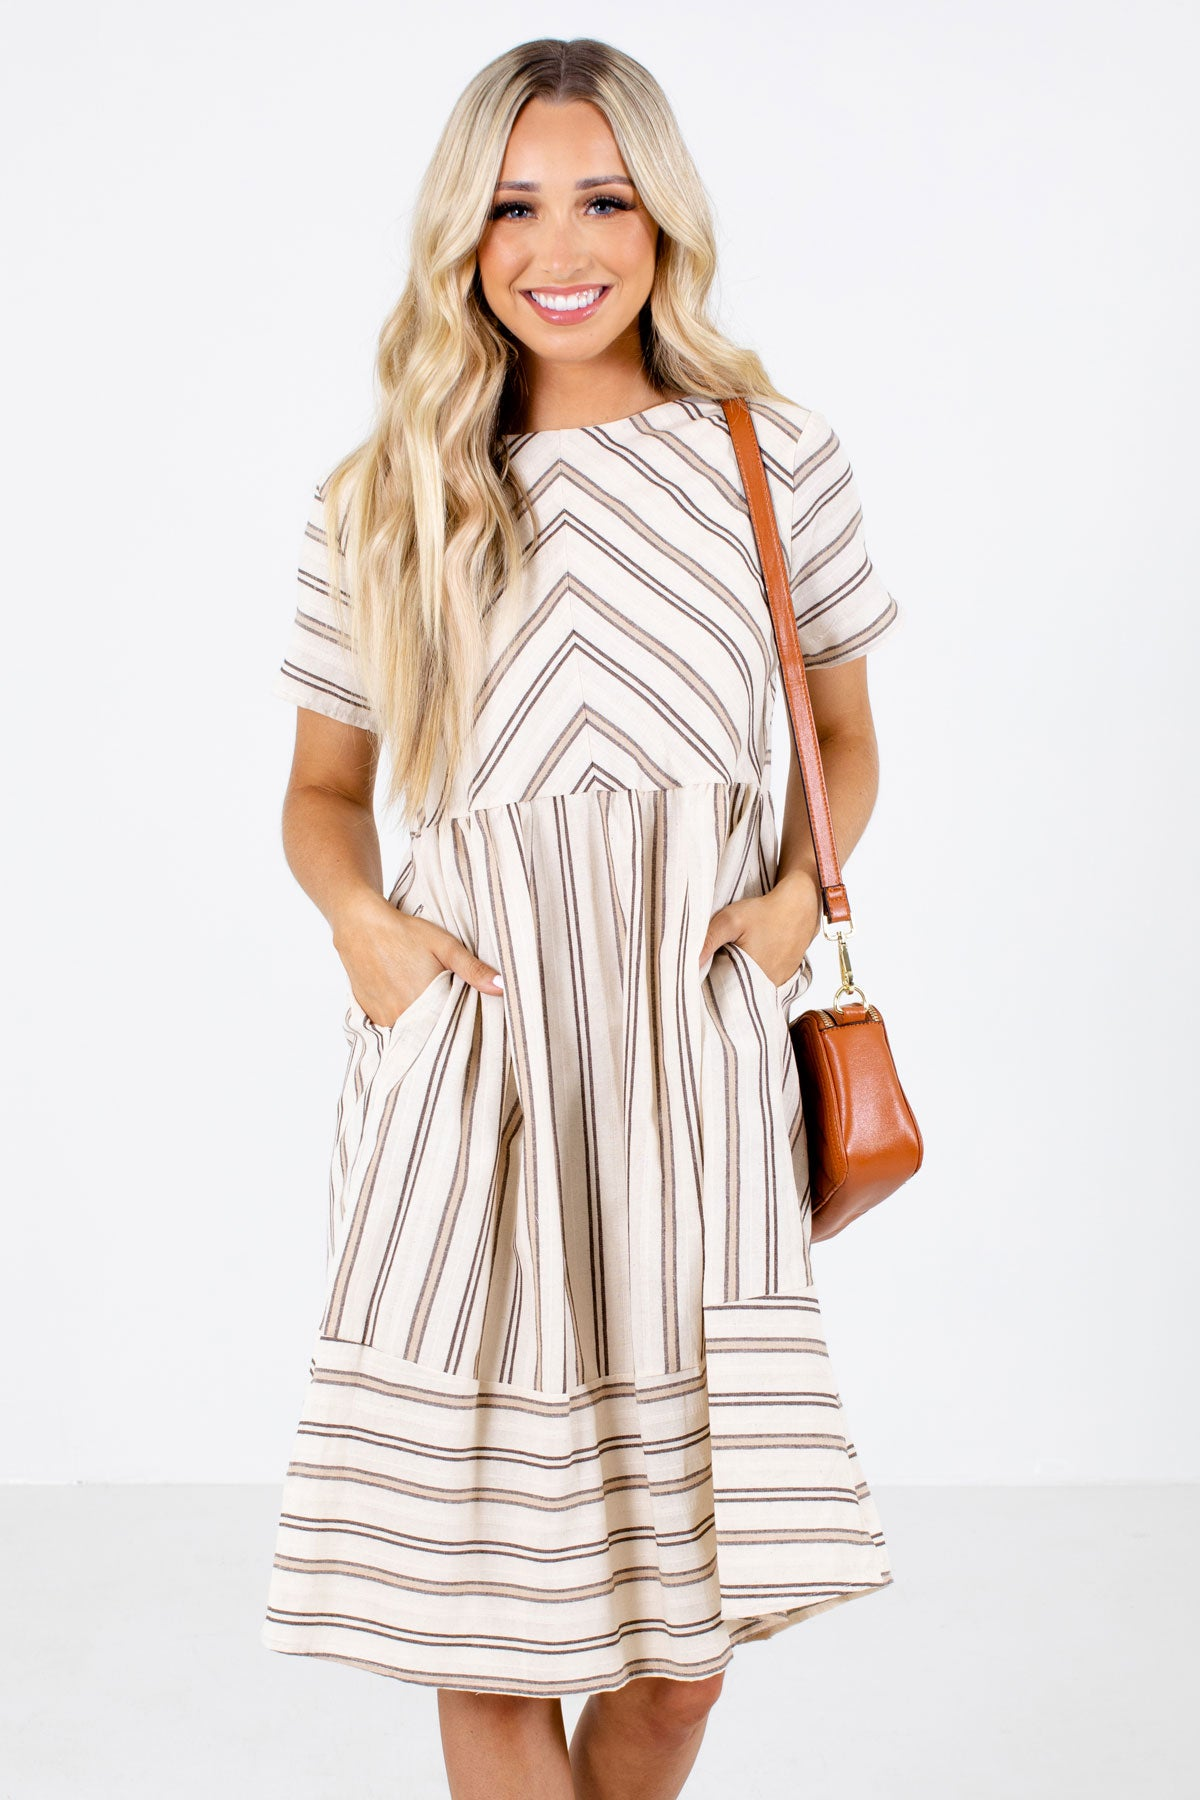 Brown Striped Boutique Knee-Length Dresses for Women